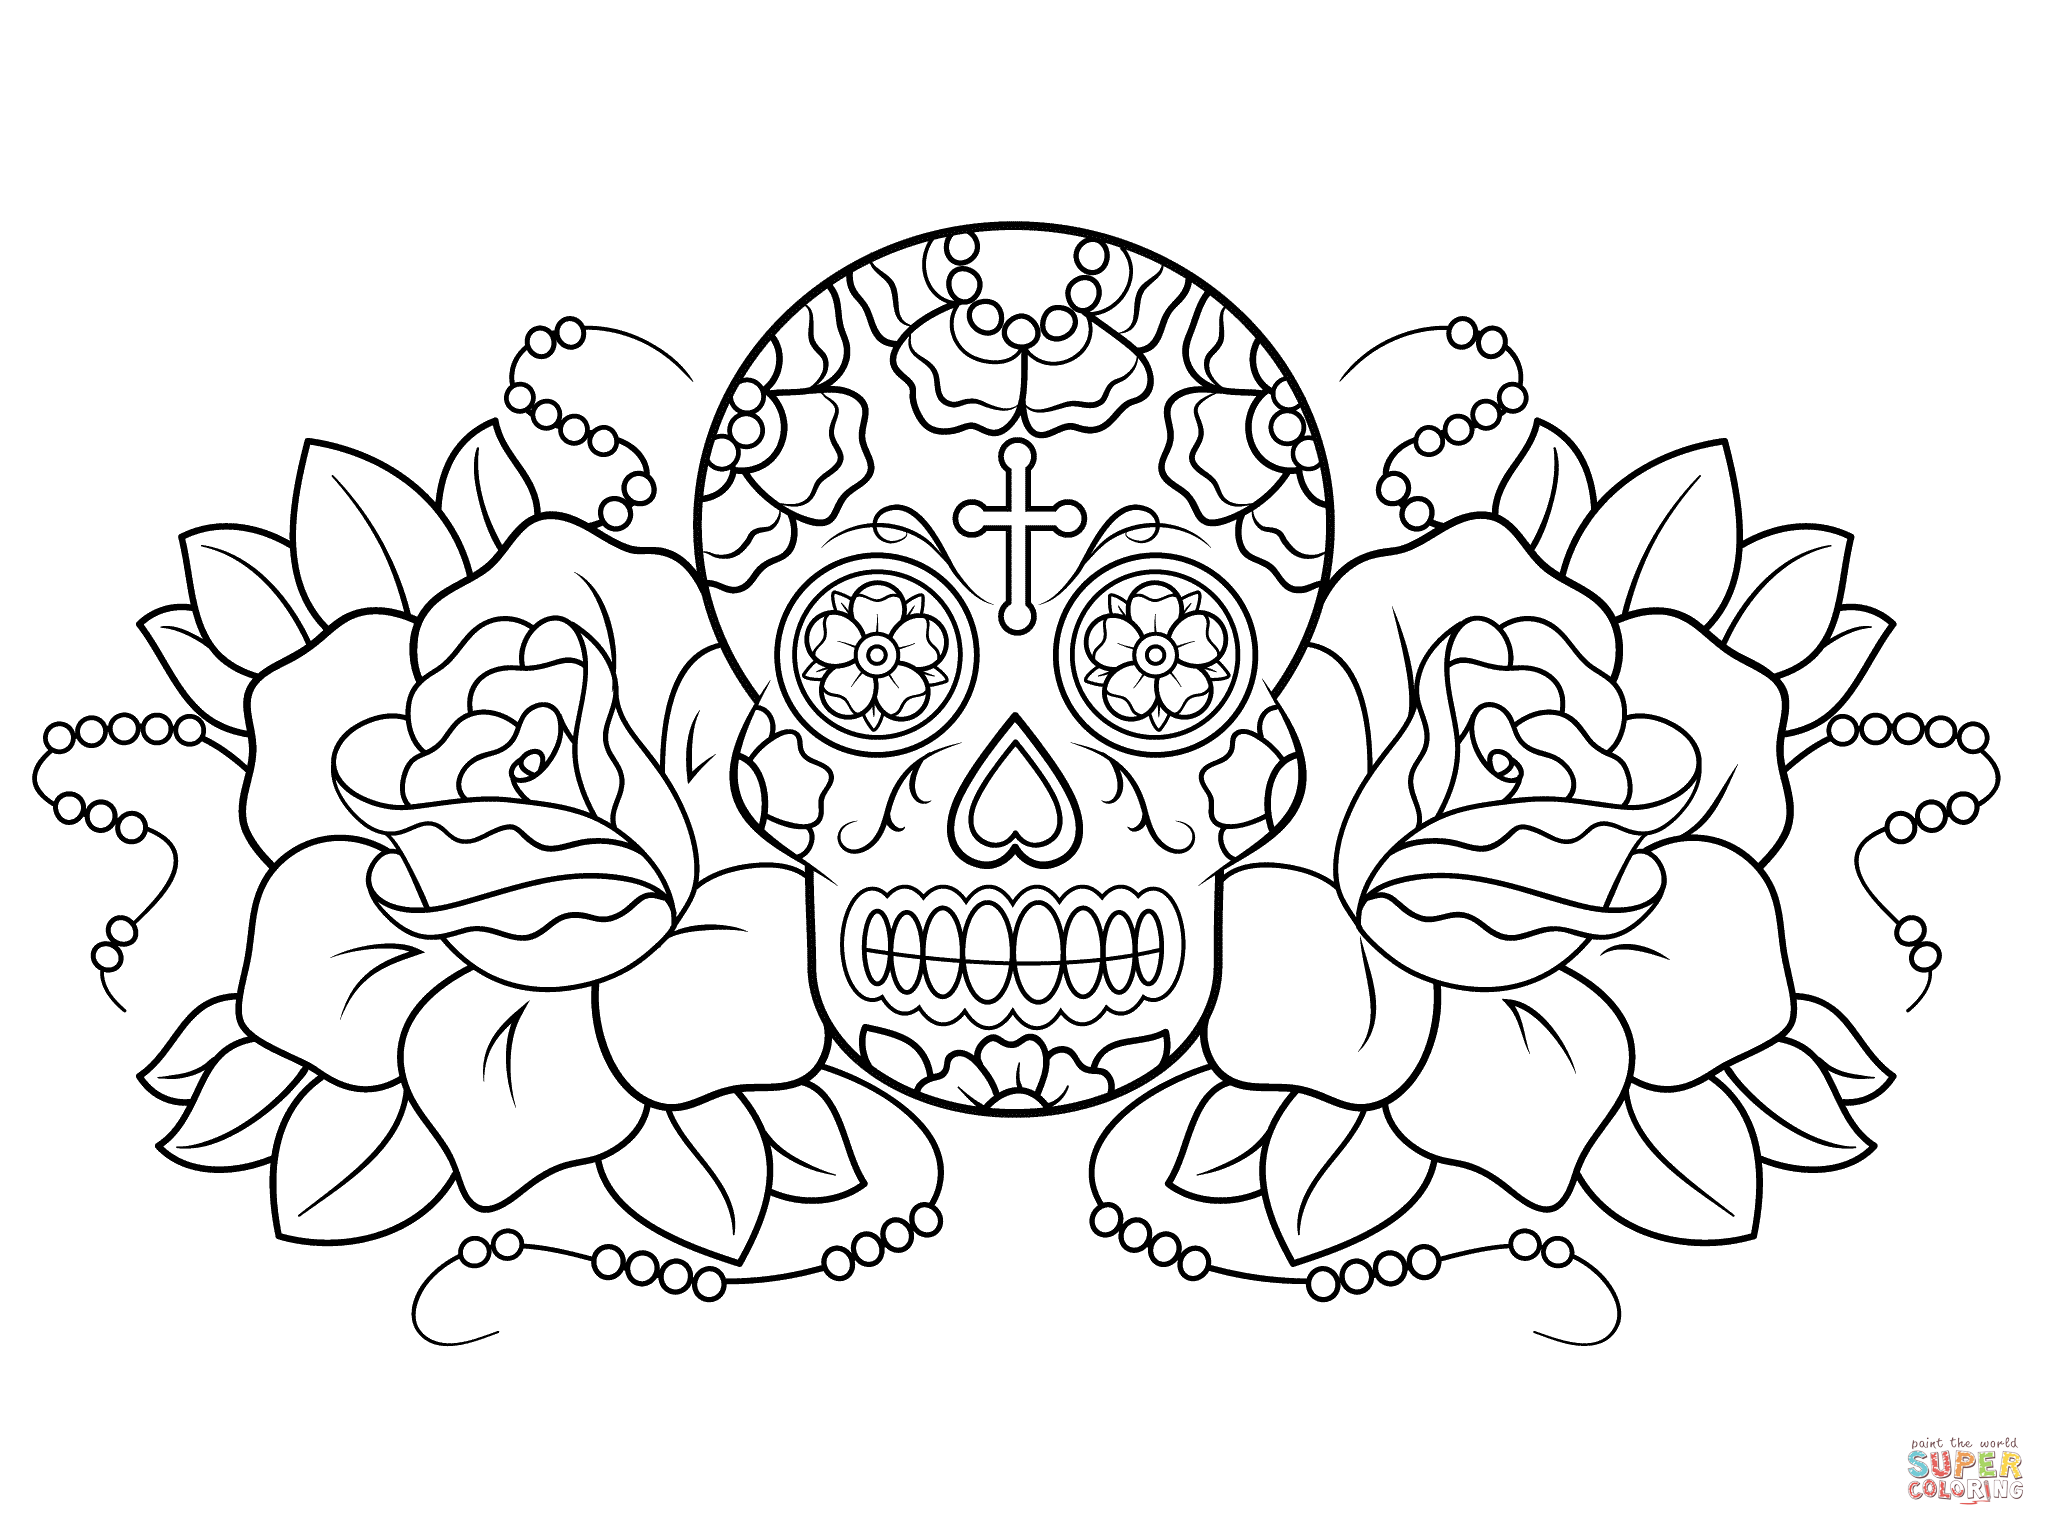 coloring sheet guns and roses coloring pages sugar skull and roses coloring page free printable and guns pages sheet coloring coloring roses